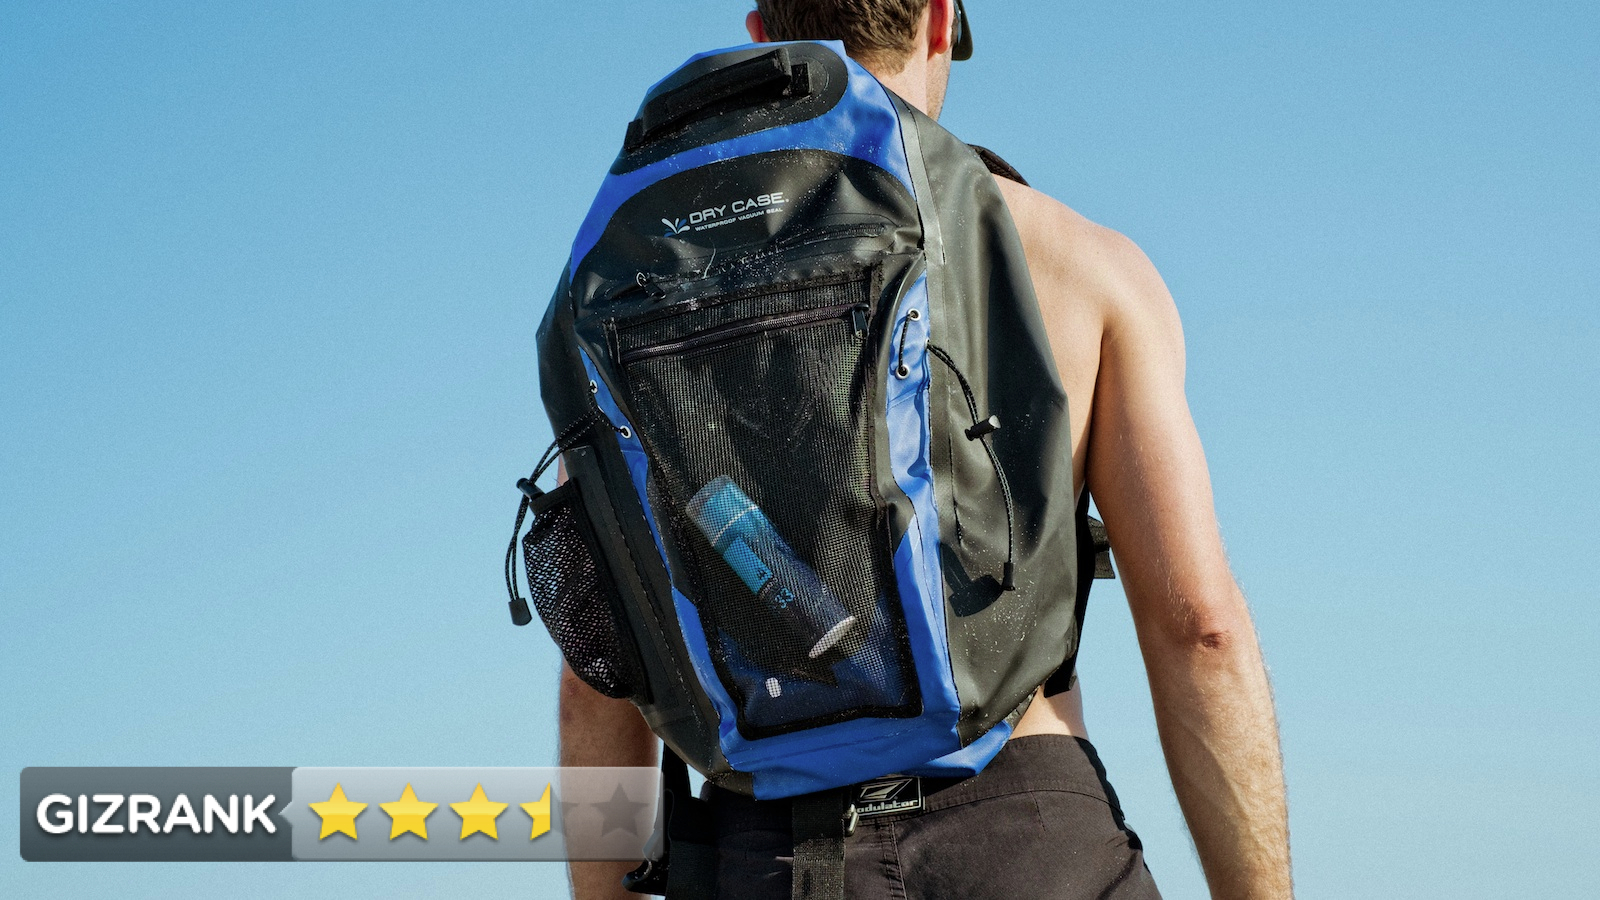 Click here to read DryCASE Waterproof Backpack Review: Moisture ain't a Thing